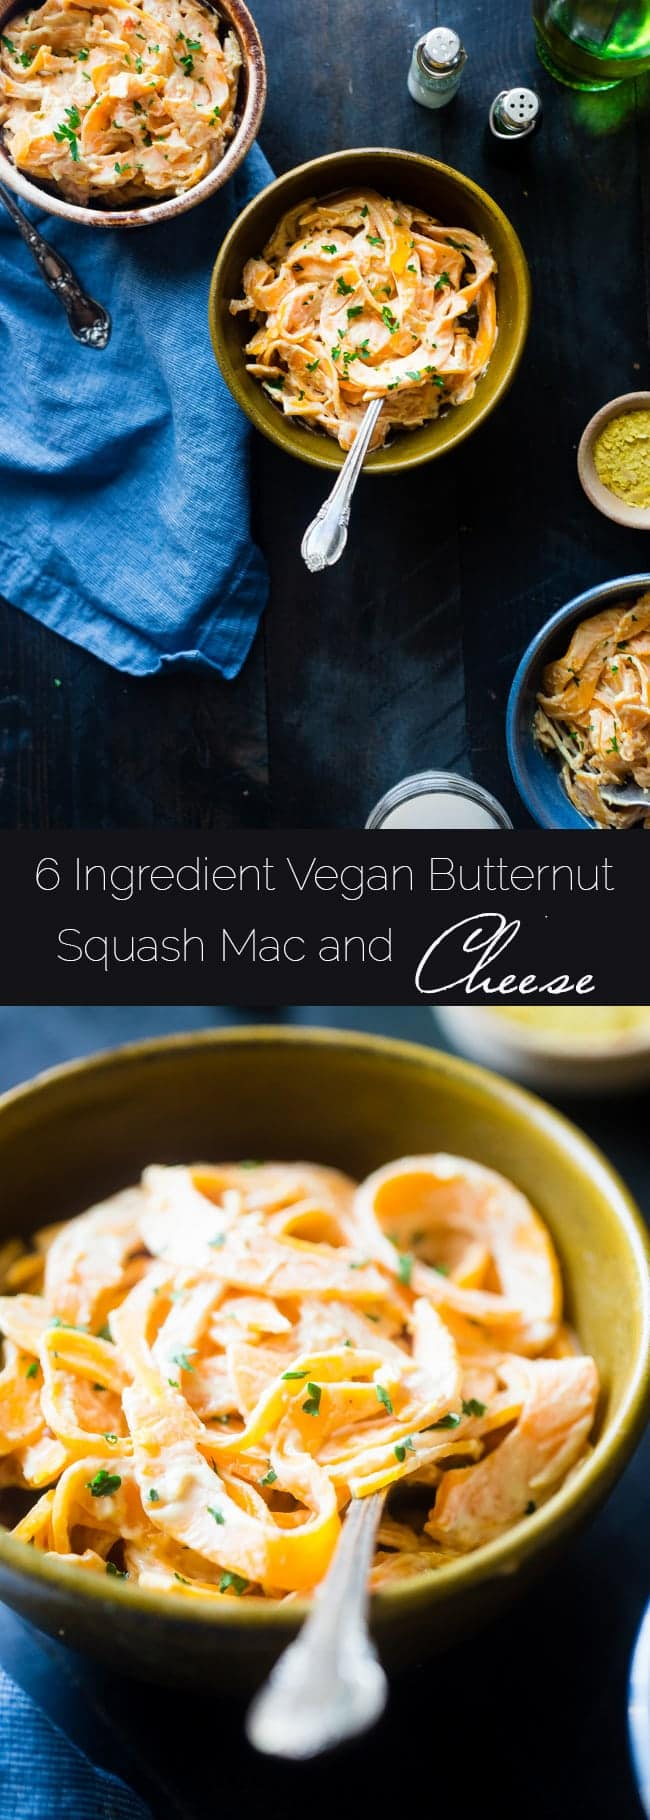 6 Ingredient Vegan Mac and Cheese with Spiralized Butternut Squash Noodles - So creamy you will never guess it's a healthy, gluten and grain free, vegan mac and cheese that is SO easy to make! | Foodfaithfitness.com | @FoodFaithFit